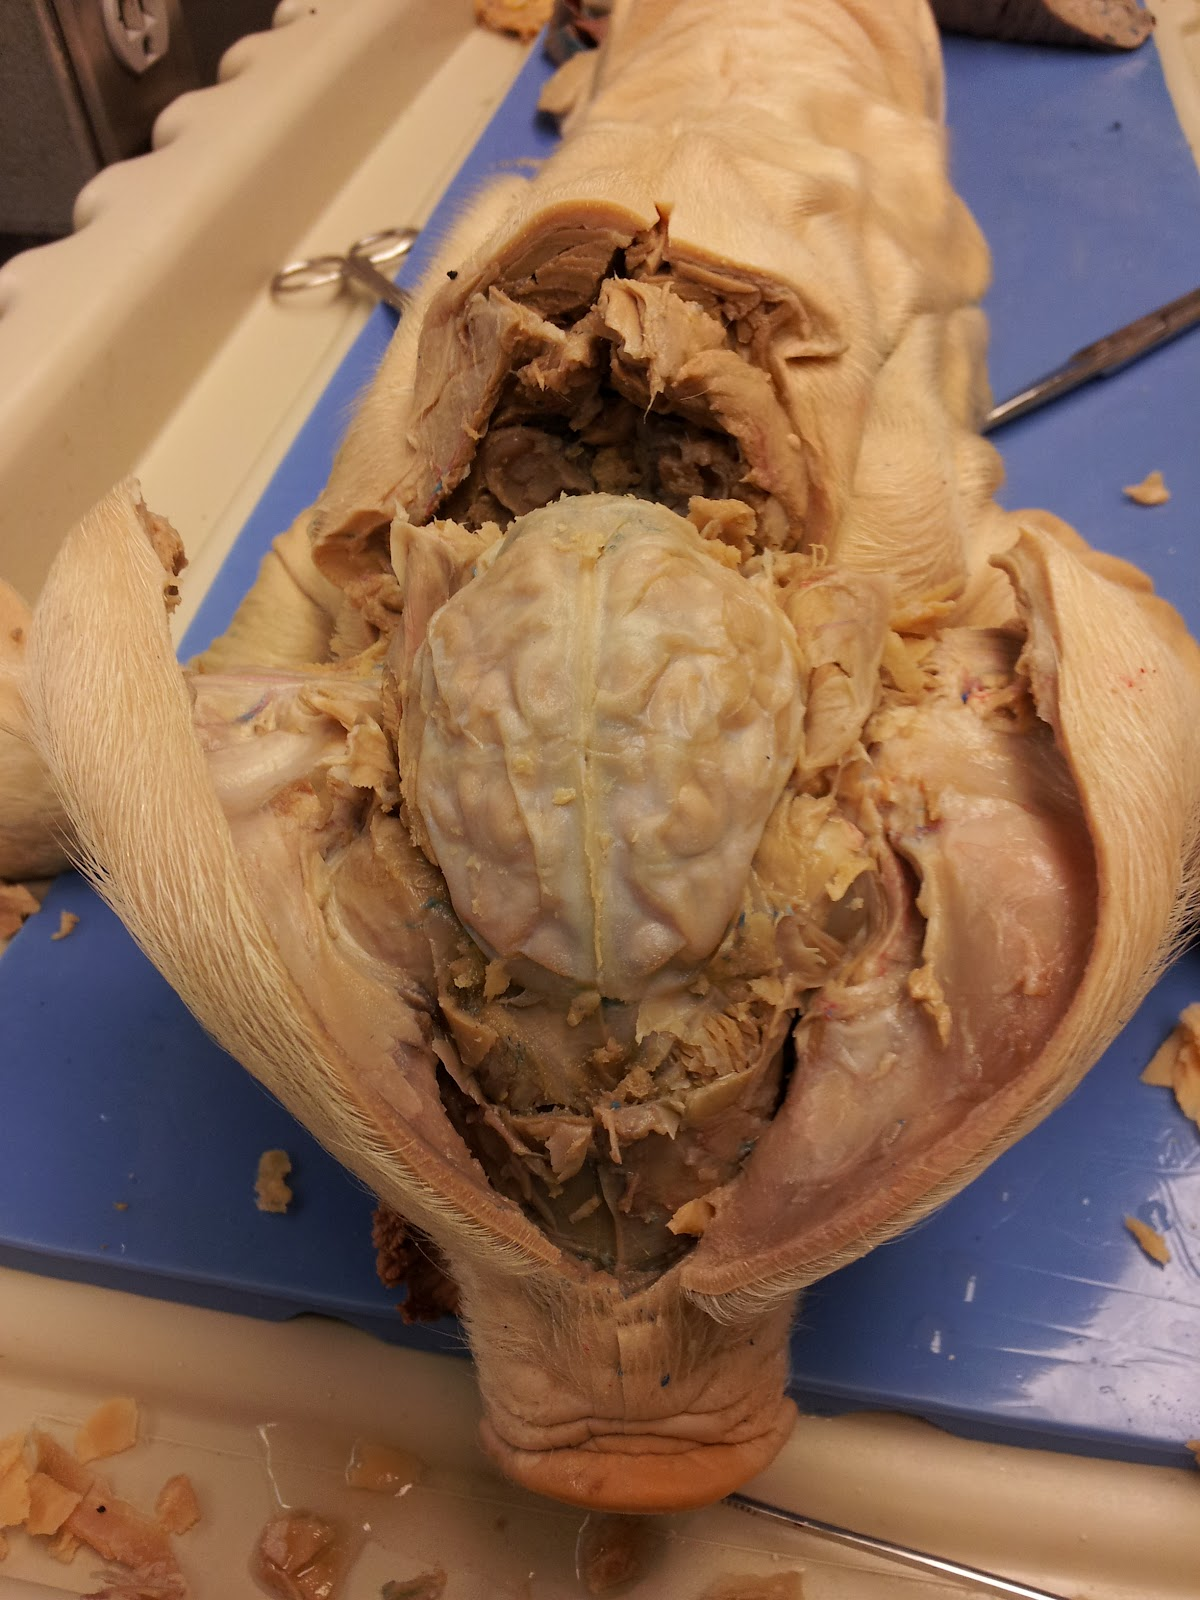 Diagram Of Pig Brain And Skull - Auto Electrical Wiring Diagram •